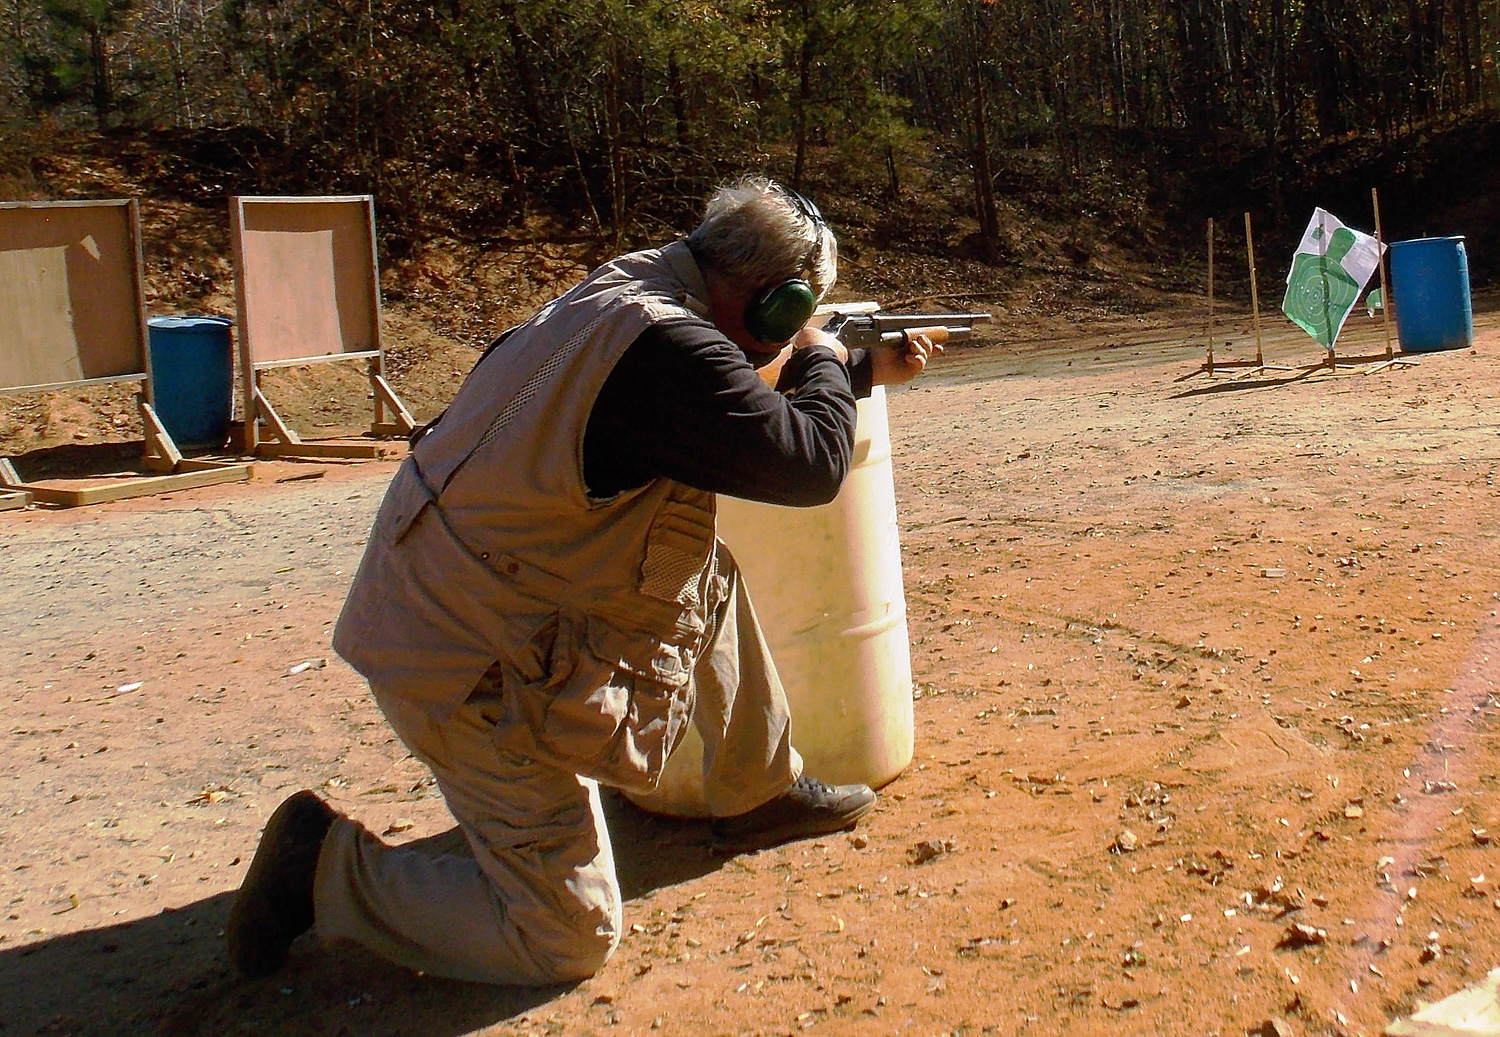 Bob Campbell shooting a shotgun from a barrel